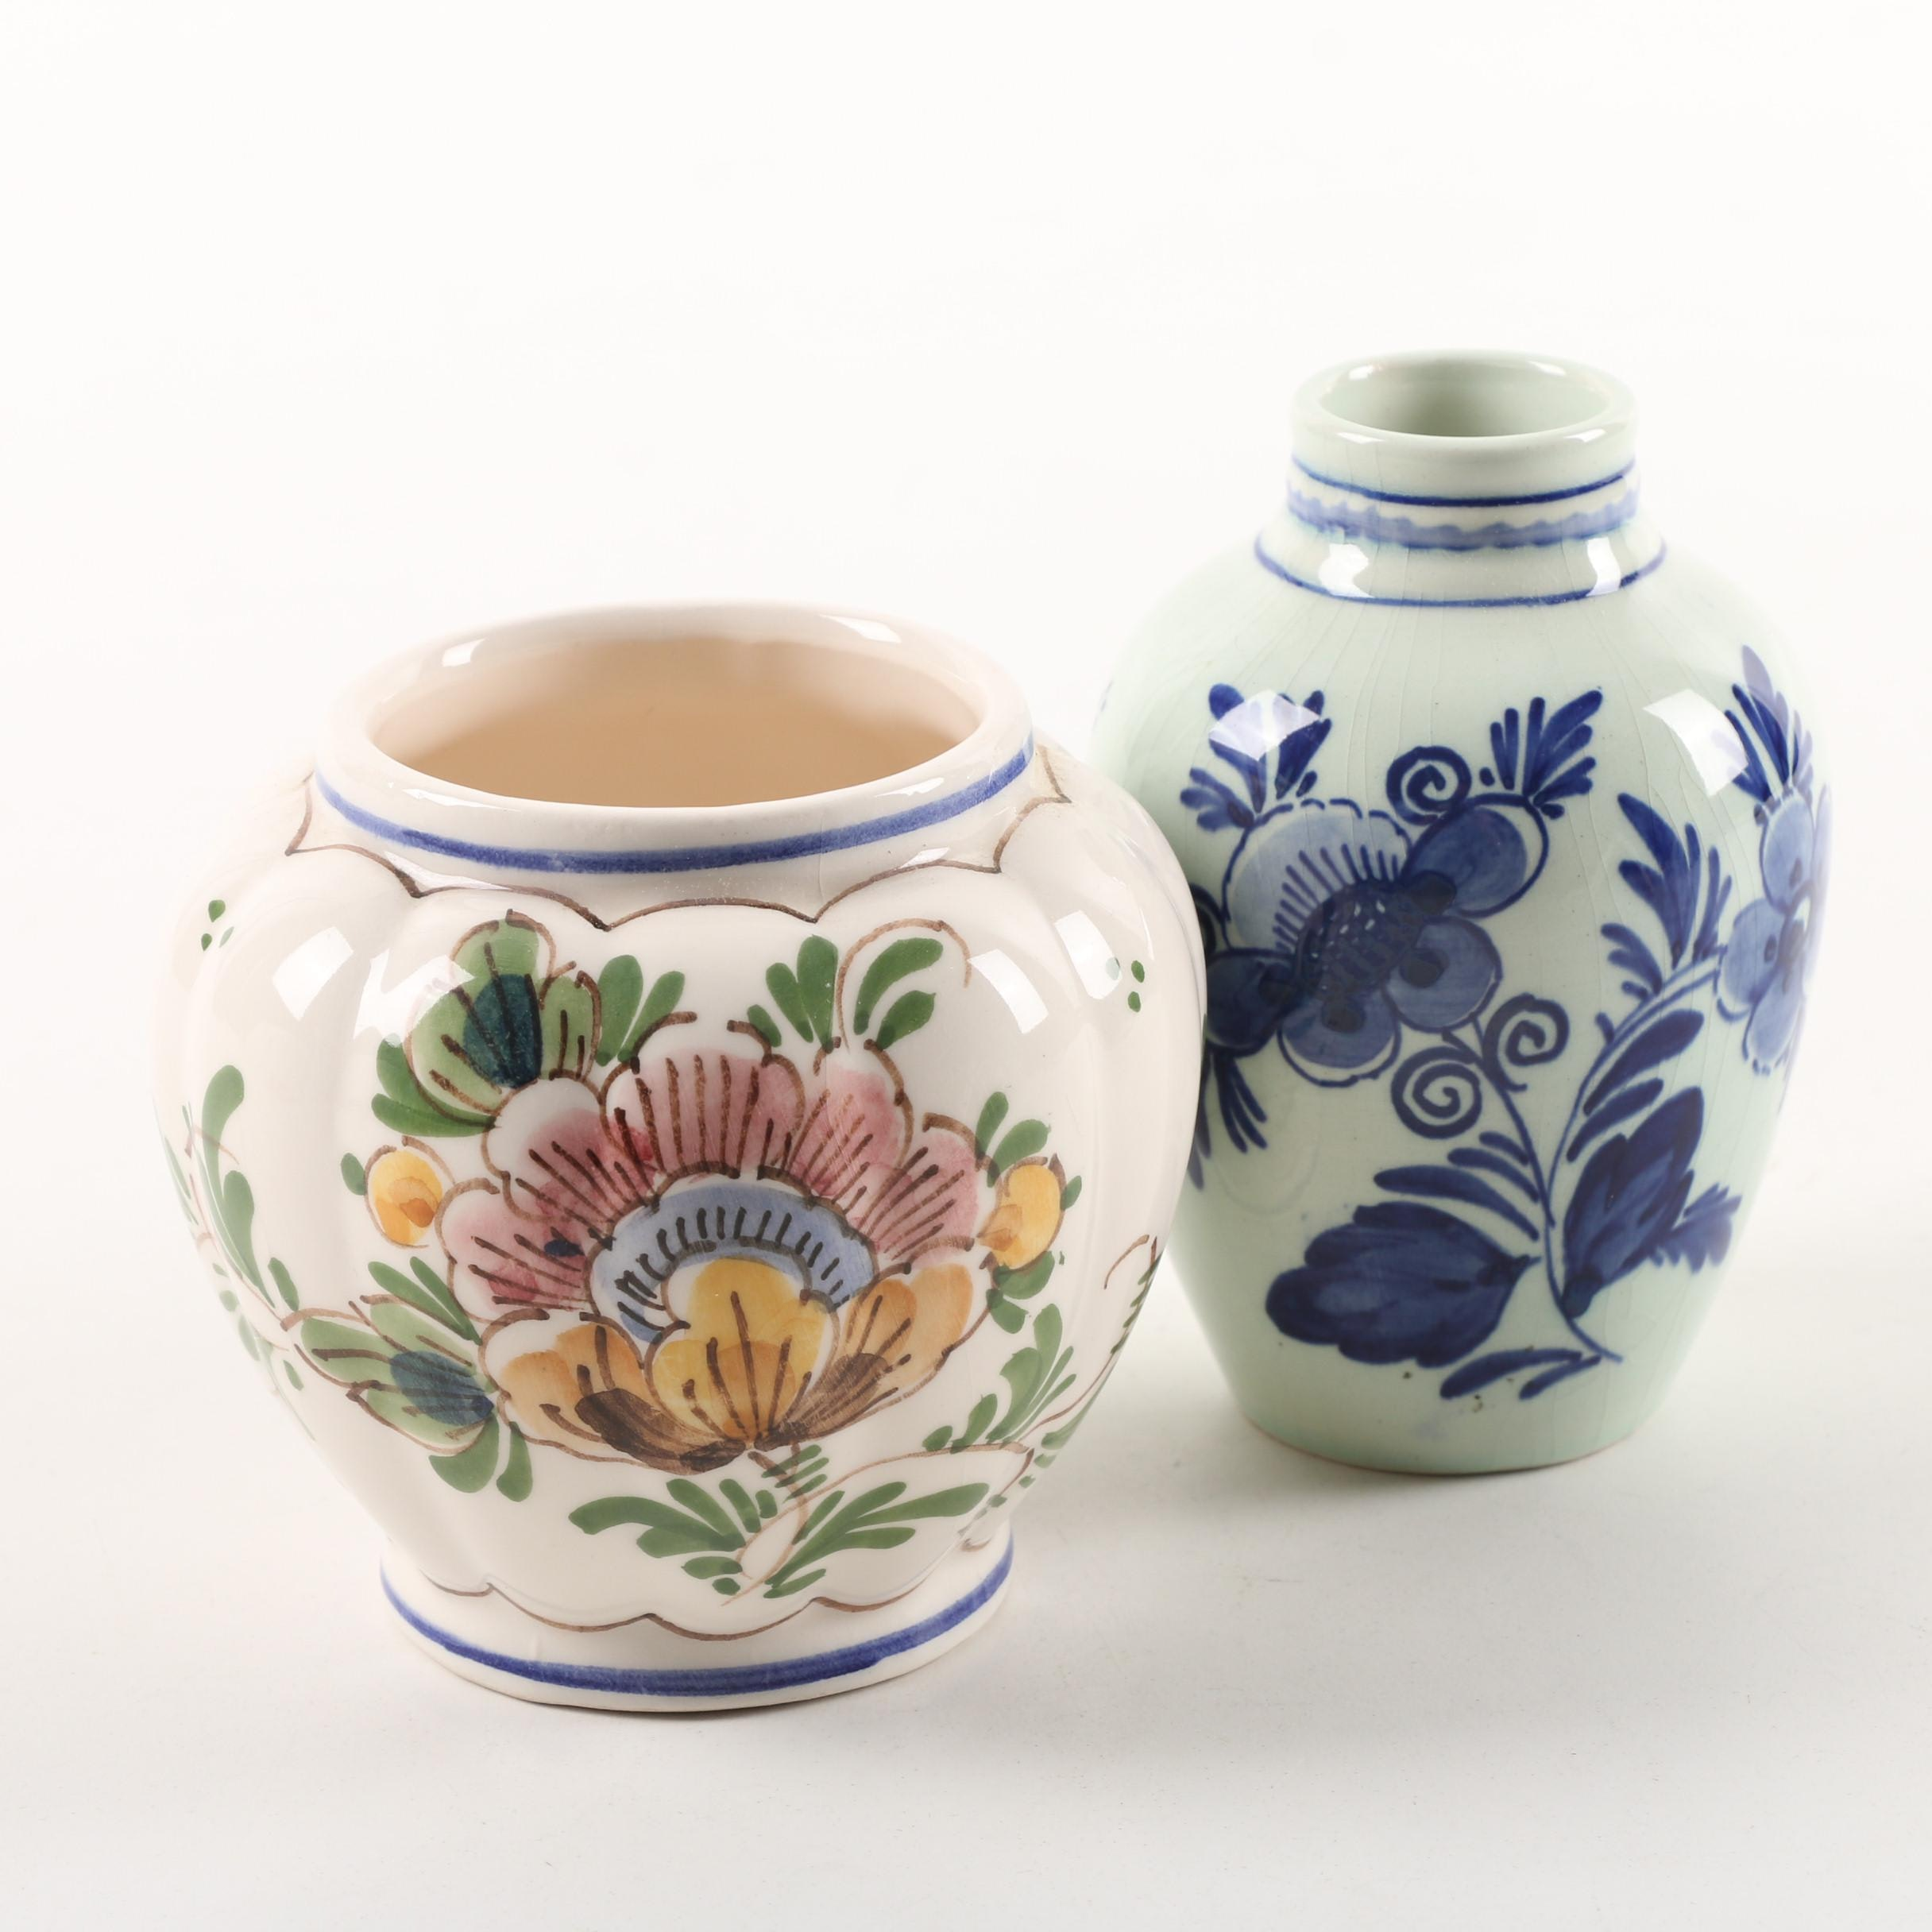 Vintage Hand-Painted Delft Ceramic Vases